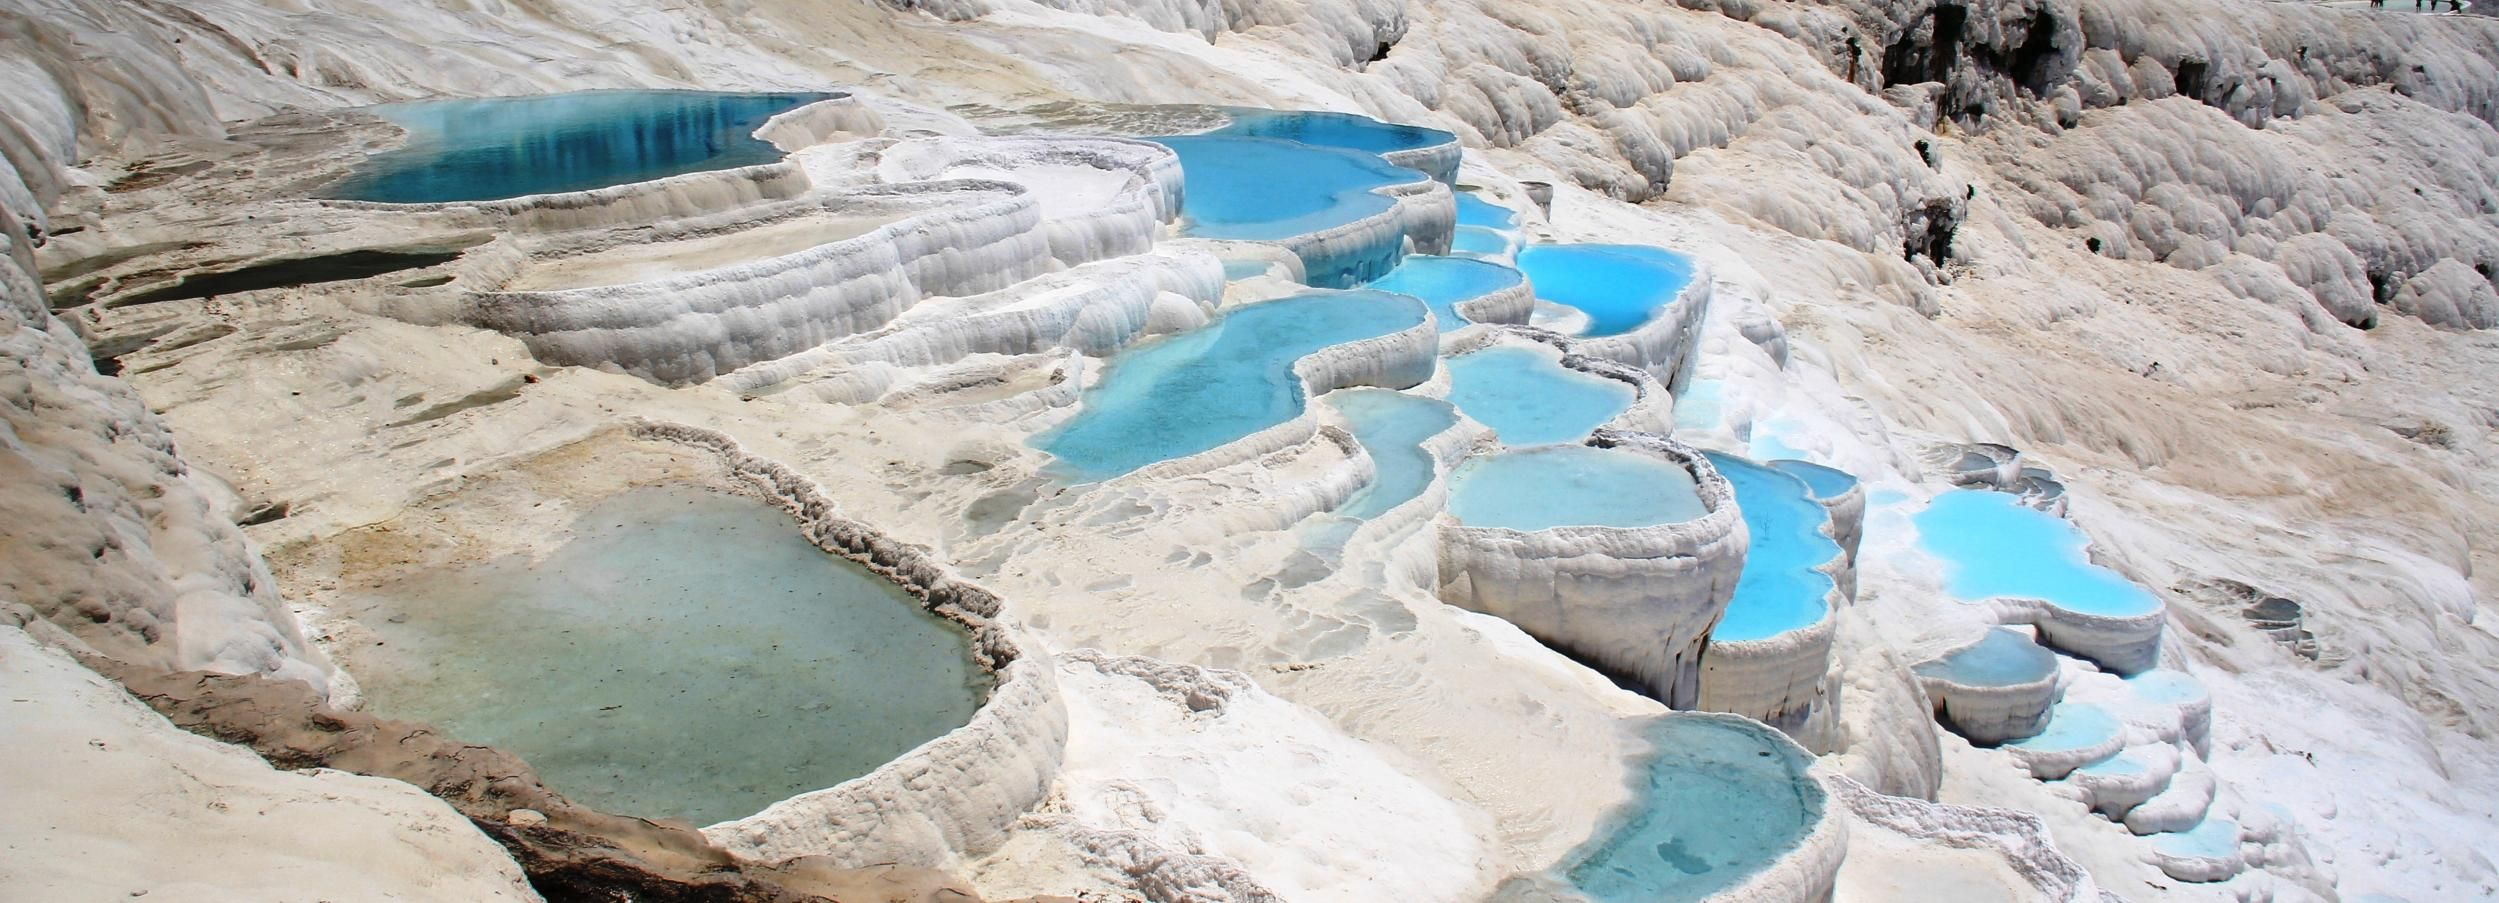 Antalya: Full-Day Pamukkale and Hierapolis Tour & Lunch